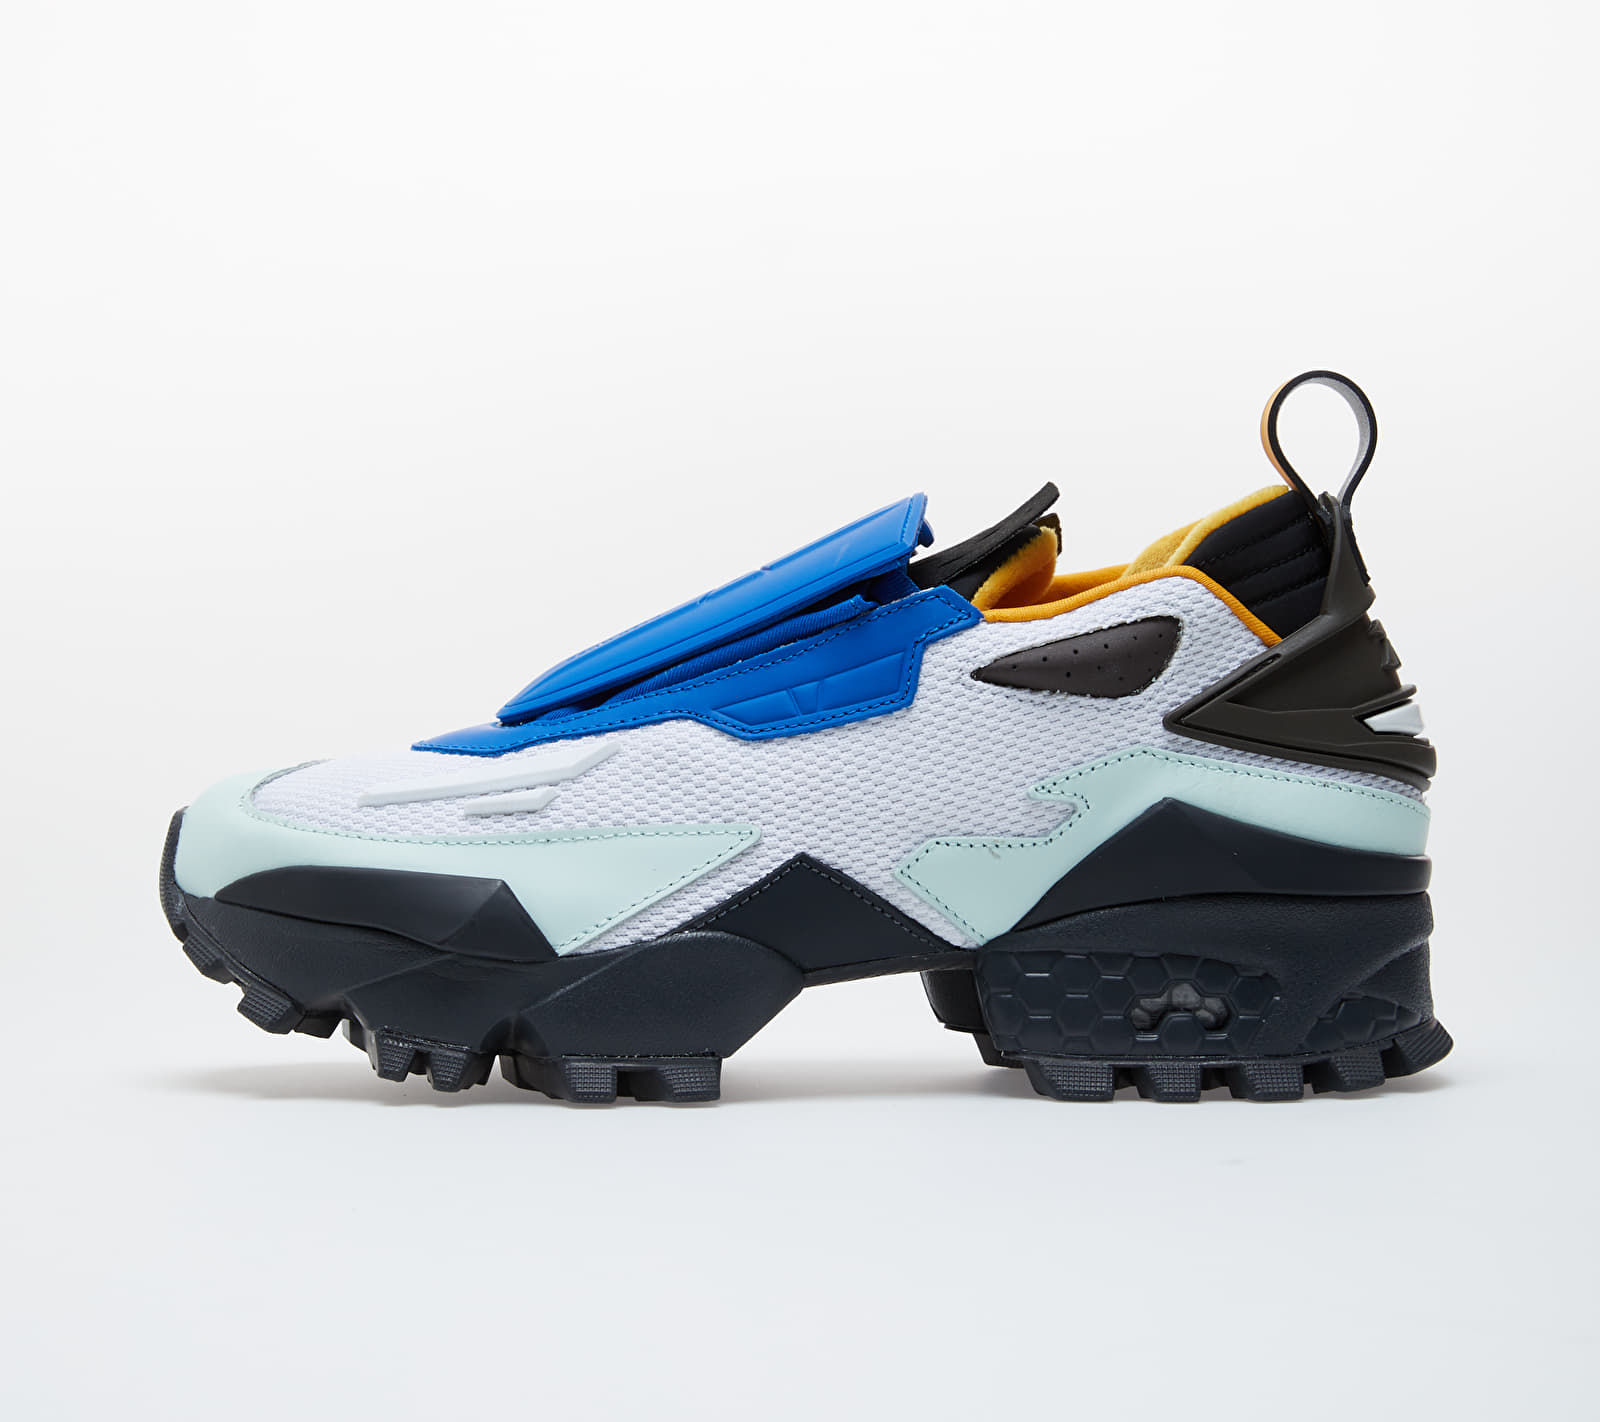 Reebok Pyer Moss Trail Fury White/ Buffalo Blue/ Trk Gold EUR 38.5